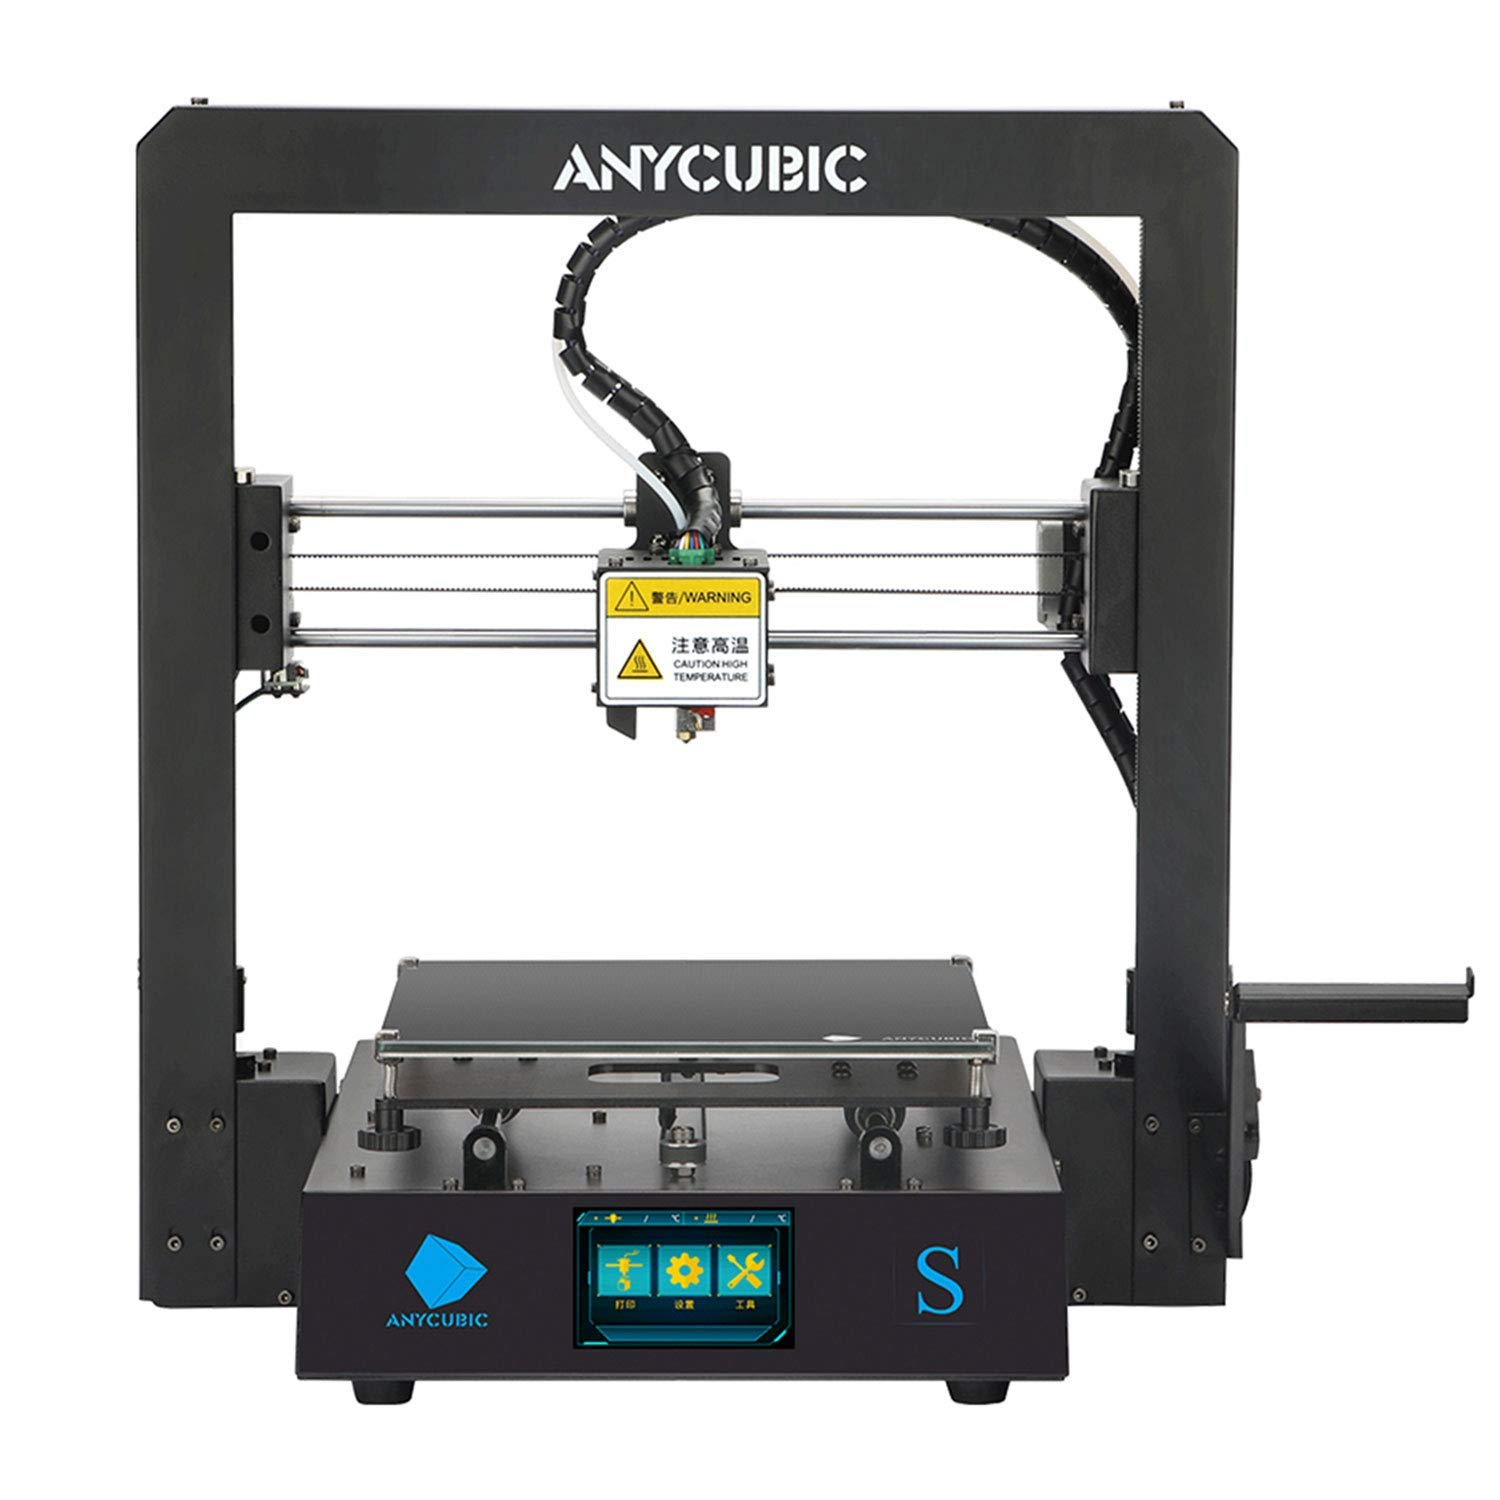 ANYCUBIC MEGA S FDM 3D Printer with Updated Extruder, All Metal Frame, Free Test Filament, DIY Printer Works with TPU/PLA/ABS Print Size 8.27(L) x 8.27(W) x 8.07(H) inches